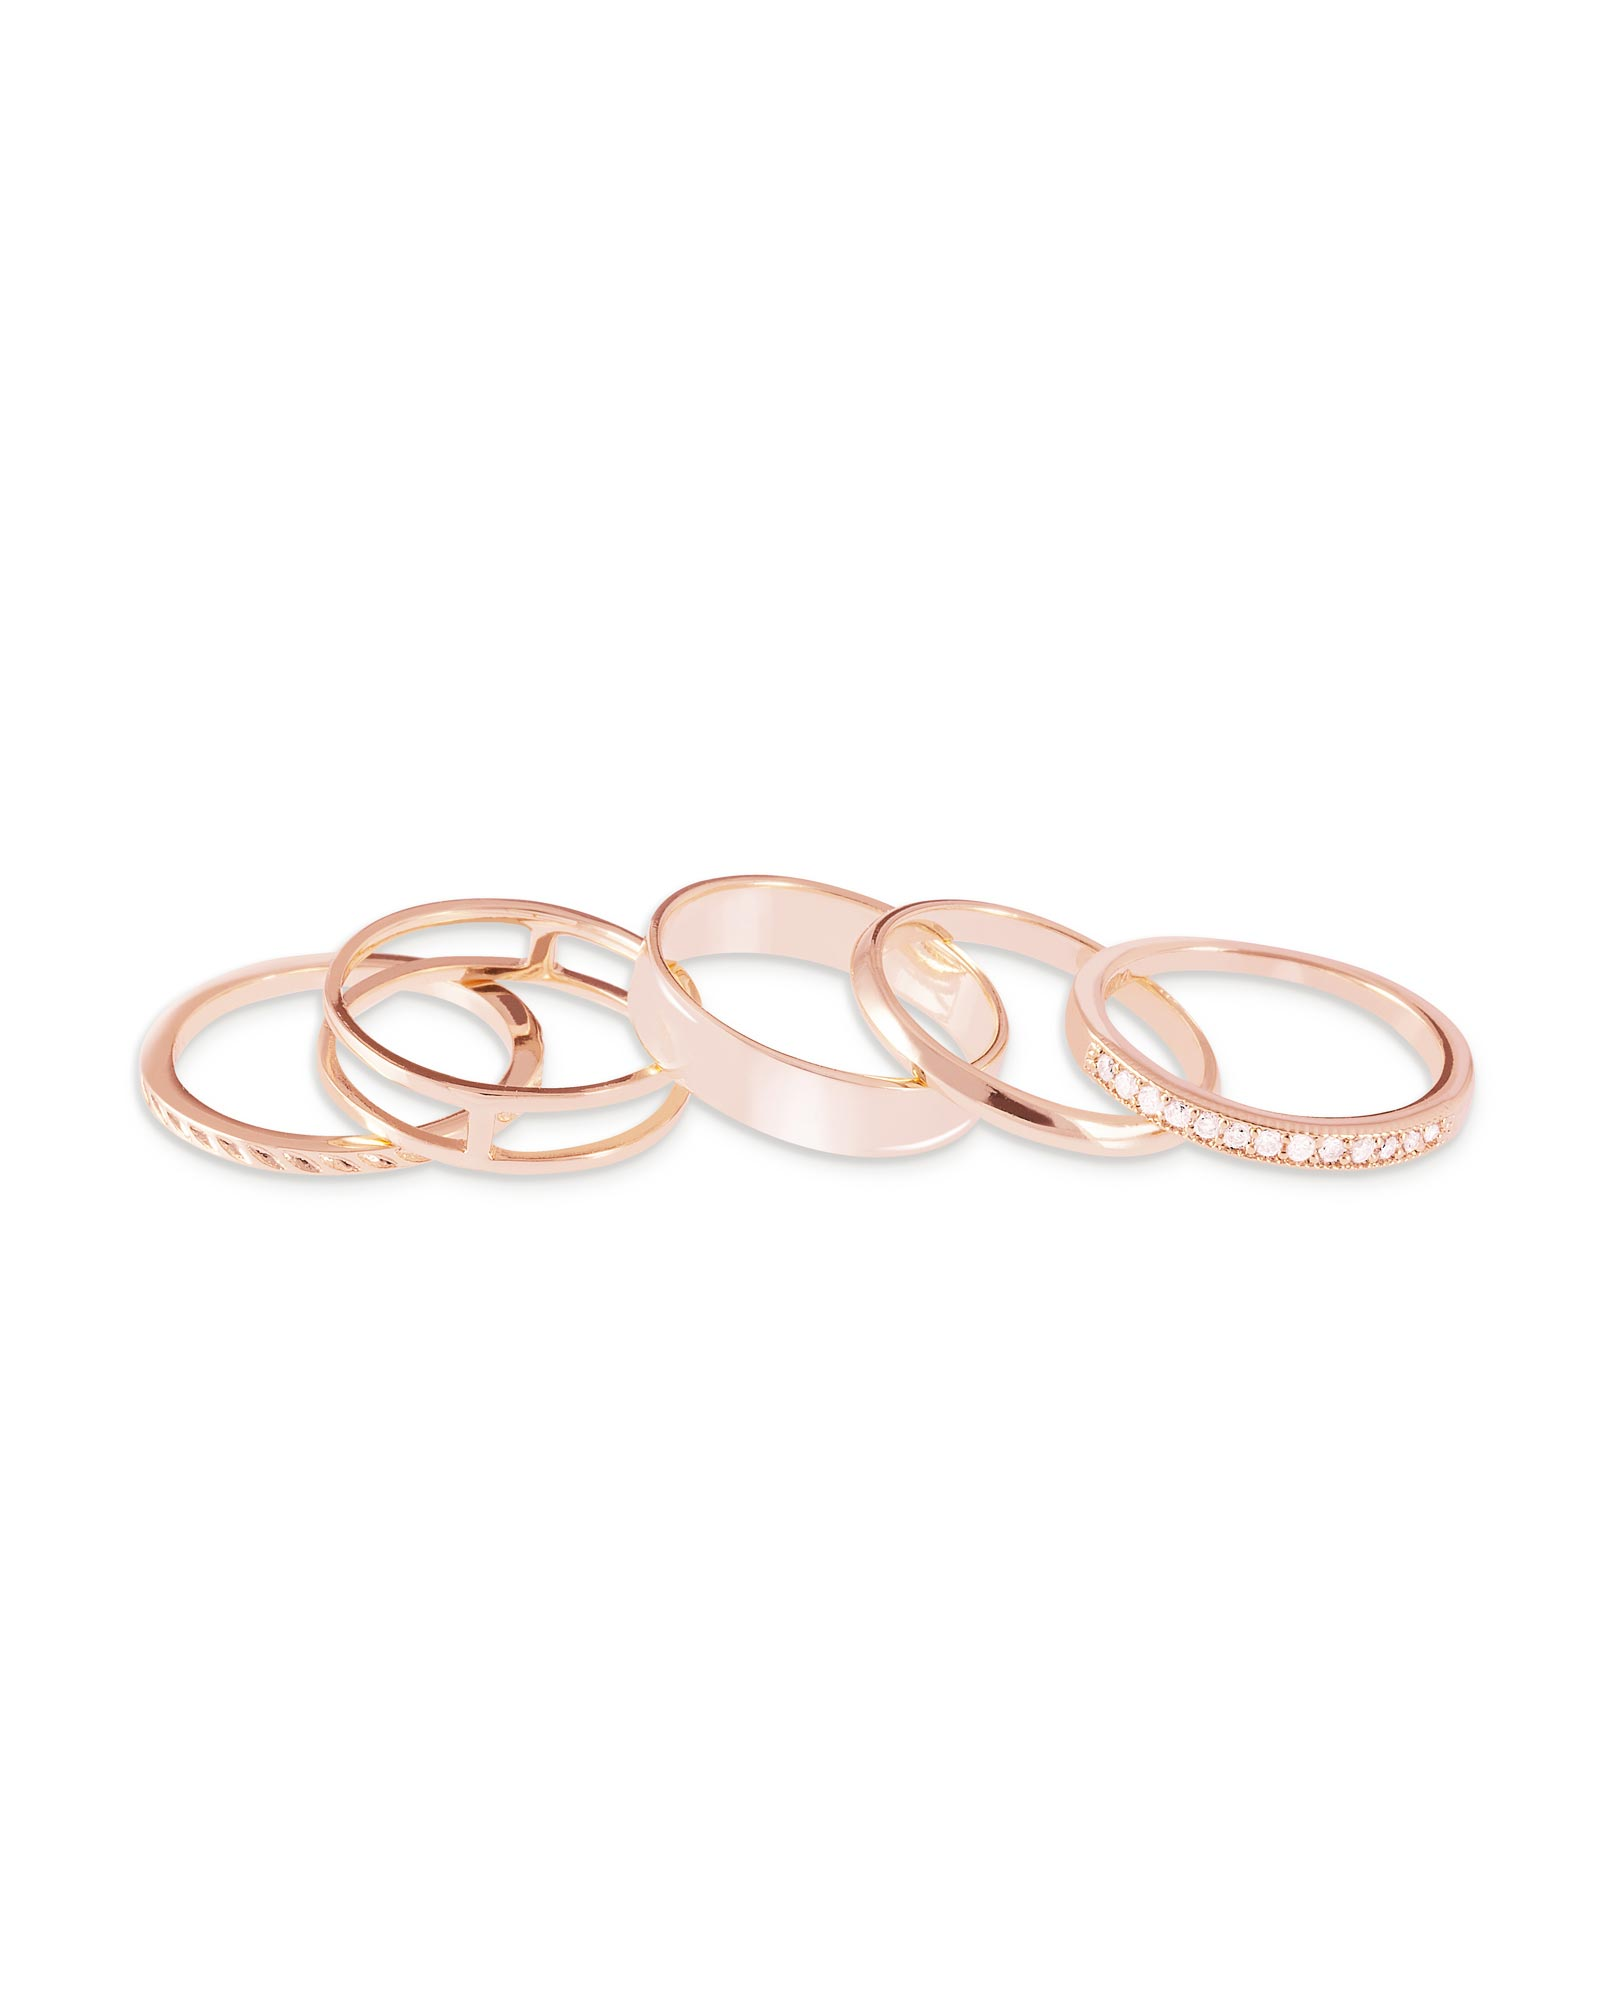 Kara Midi Ring Set in Rose Gold